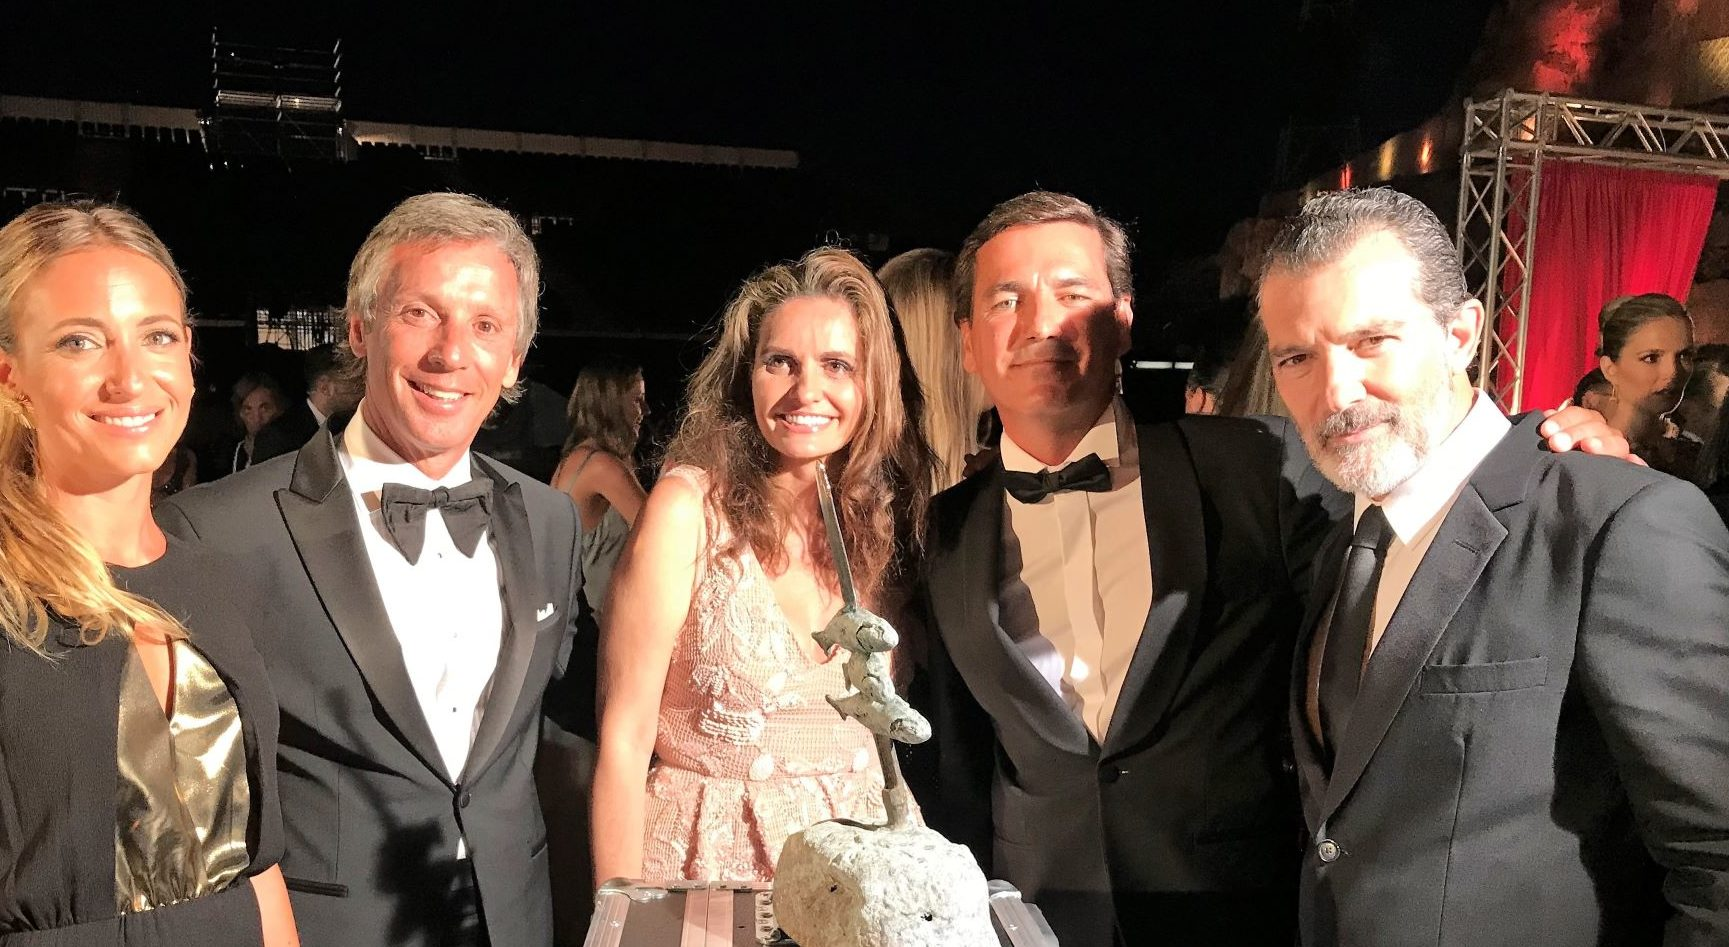 Donation to Starlite charity gala organized by Antonio Banderas and Sandra García-Sanjuán